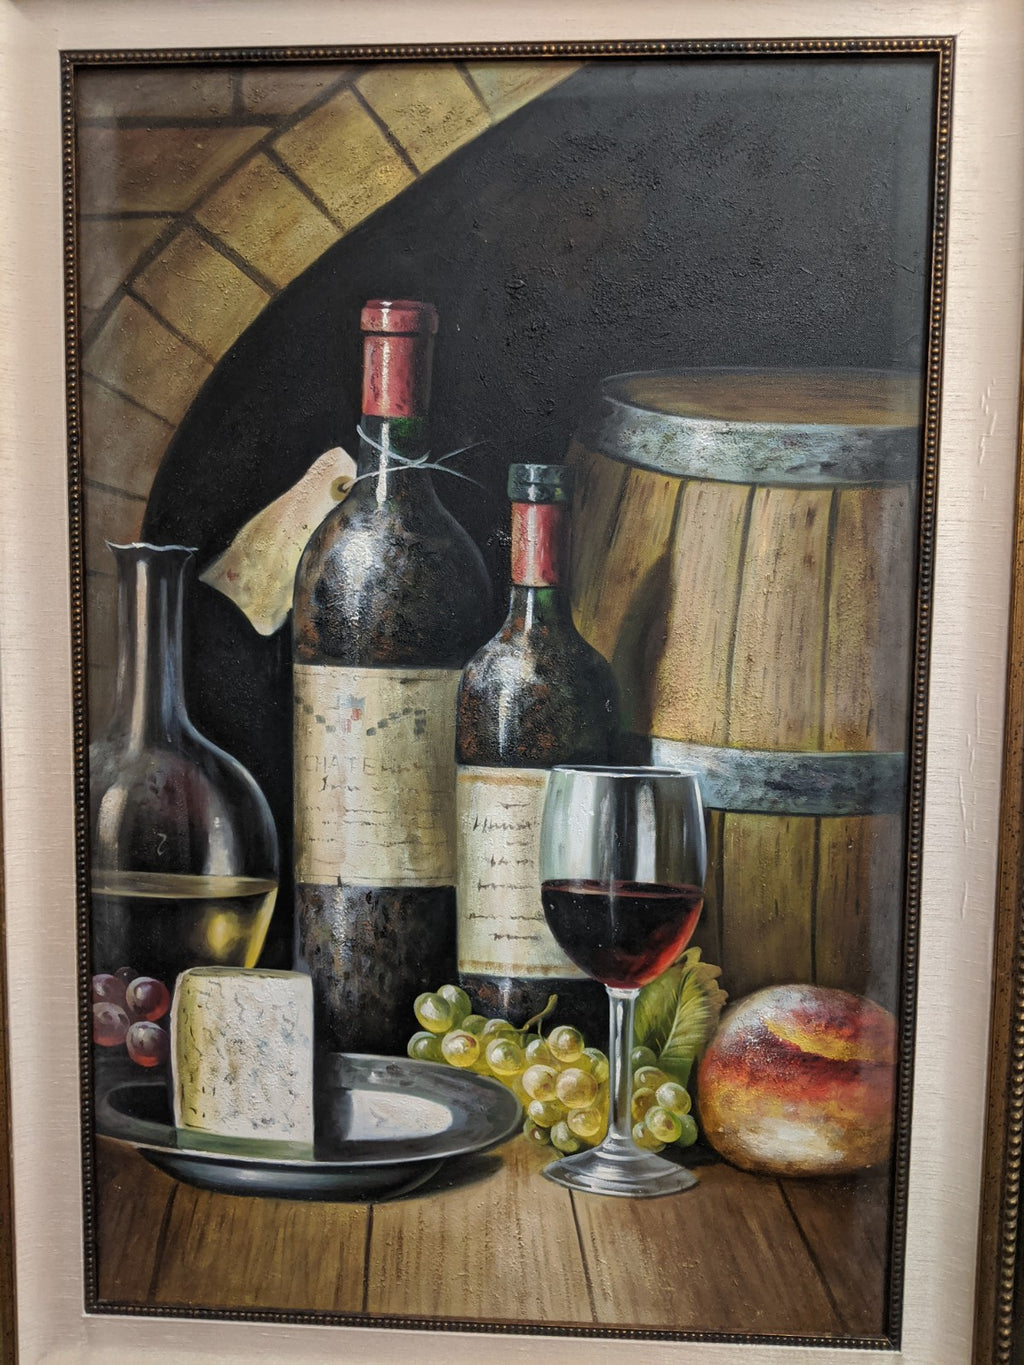 Blue Cheese and Red Wine Still Life framed art